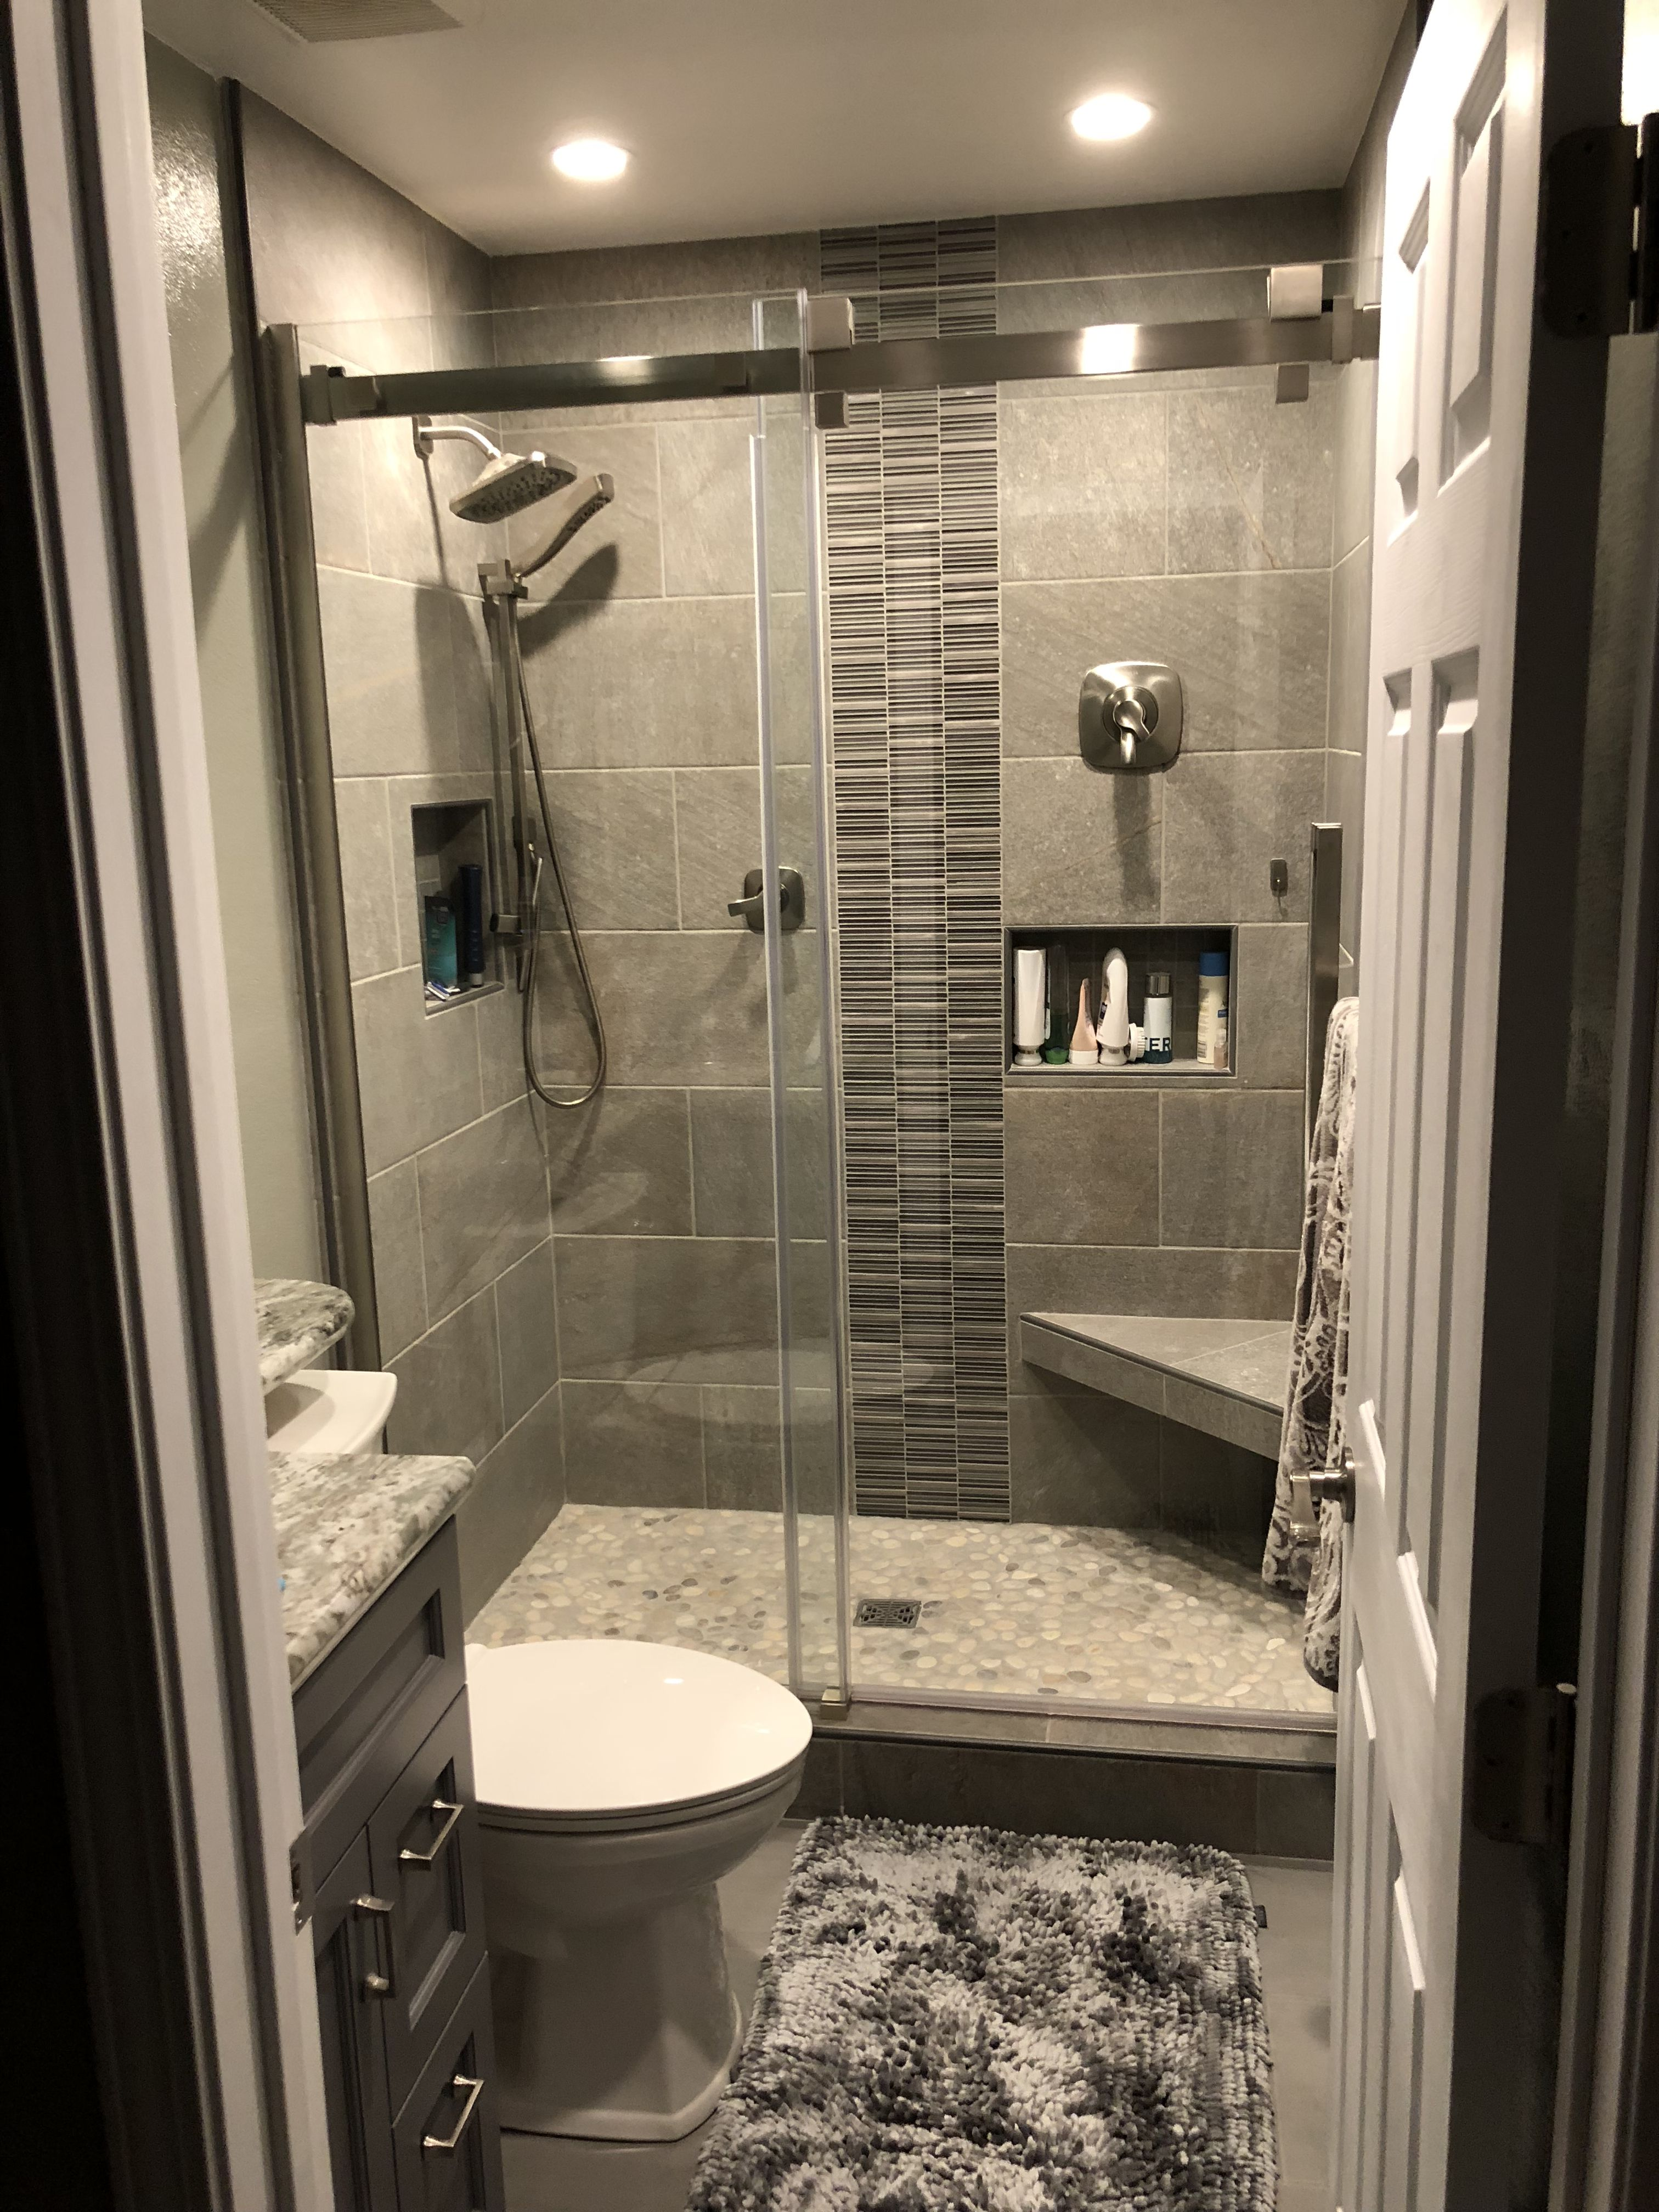 I Completed This Bathroom Using Delta Tesla Faucets In The Shower